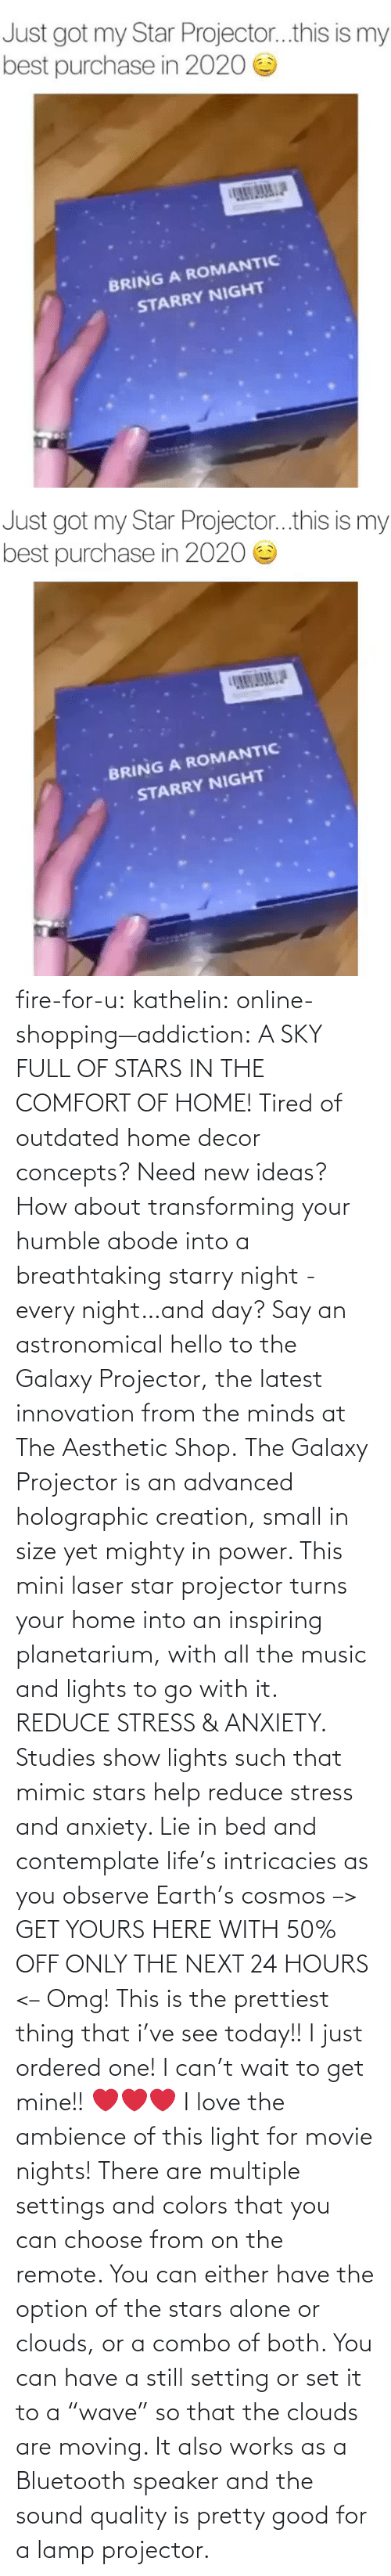 "i can: fire-for-u:  kathelin: online-shopping—addiction:  A SKY FULL OF STARS IN THE COMFORT OF HOME! Tired of outdated home decor concepts? Need new ideas? How about transforming your humble abode into a breathtaking starry night - every night…and day? Say an astronomical hello to the Galaxy Projector, the latest innovation from the minds at The Aesthetic Shop. The Galaxy Projector is an advanced holographic creation, small in size yet mighty in power. This mini laser star projector turns your home into an inspiring planetarium, with all the music and lights to go with it. REDUCE STRESS & ANXIETY. Studies show lights such that mimic stars help reduce stress and anxiety. Lie in bed and contemplate life's intricacies as you observe Earth's cosmos  –> GET YOURS HERE WITH 50% OFF ONLY THE NEXT 24 HOURS <–   Omg! This is the prettiest thing that i've see today!! I just ordered one! I can't wait to get mine!! ❤️️❤️️❤️️  I love the ambience of this light for movie nights! There are multiple settings and colors that you can choose from on the remote. You can either have the option of the stars alone or clouds, or a combo of both. You can have a still setting or set it to a ""wave"" so that the clouds are moving. It also works as a Bluetooth speaker and the sound quality is pretty good for a lamp projector."